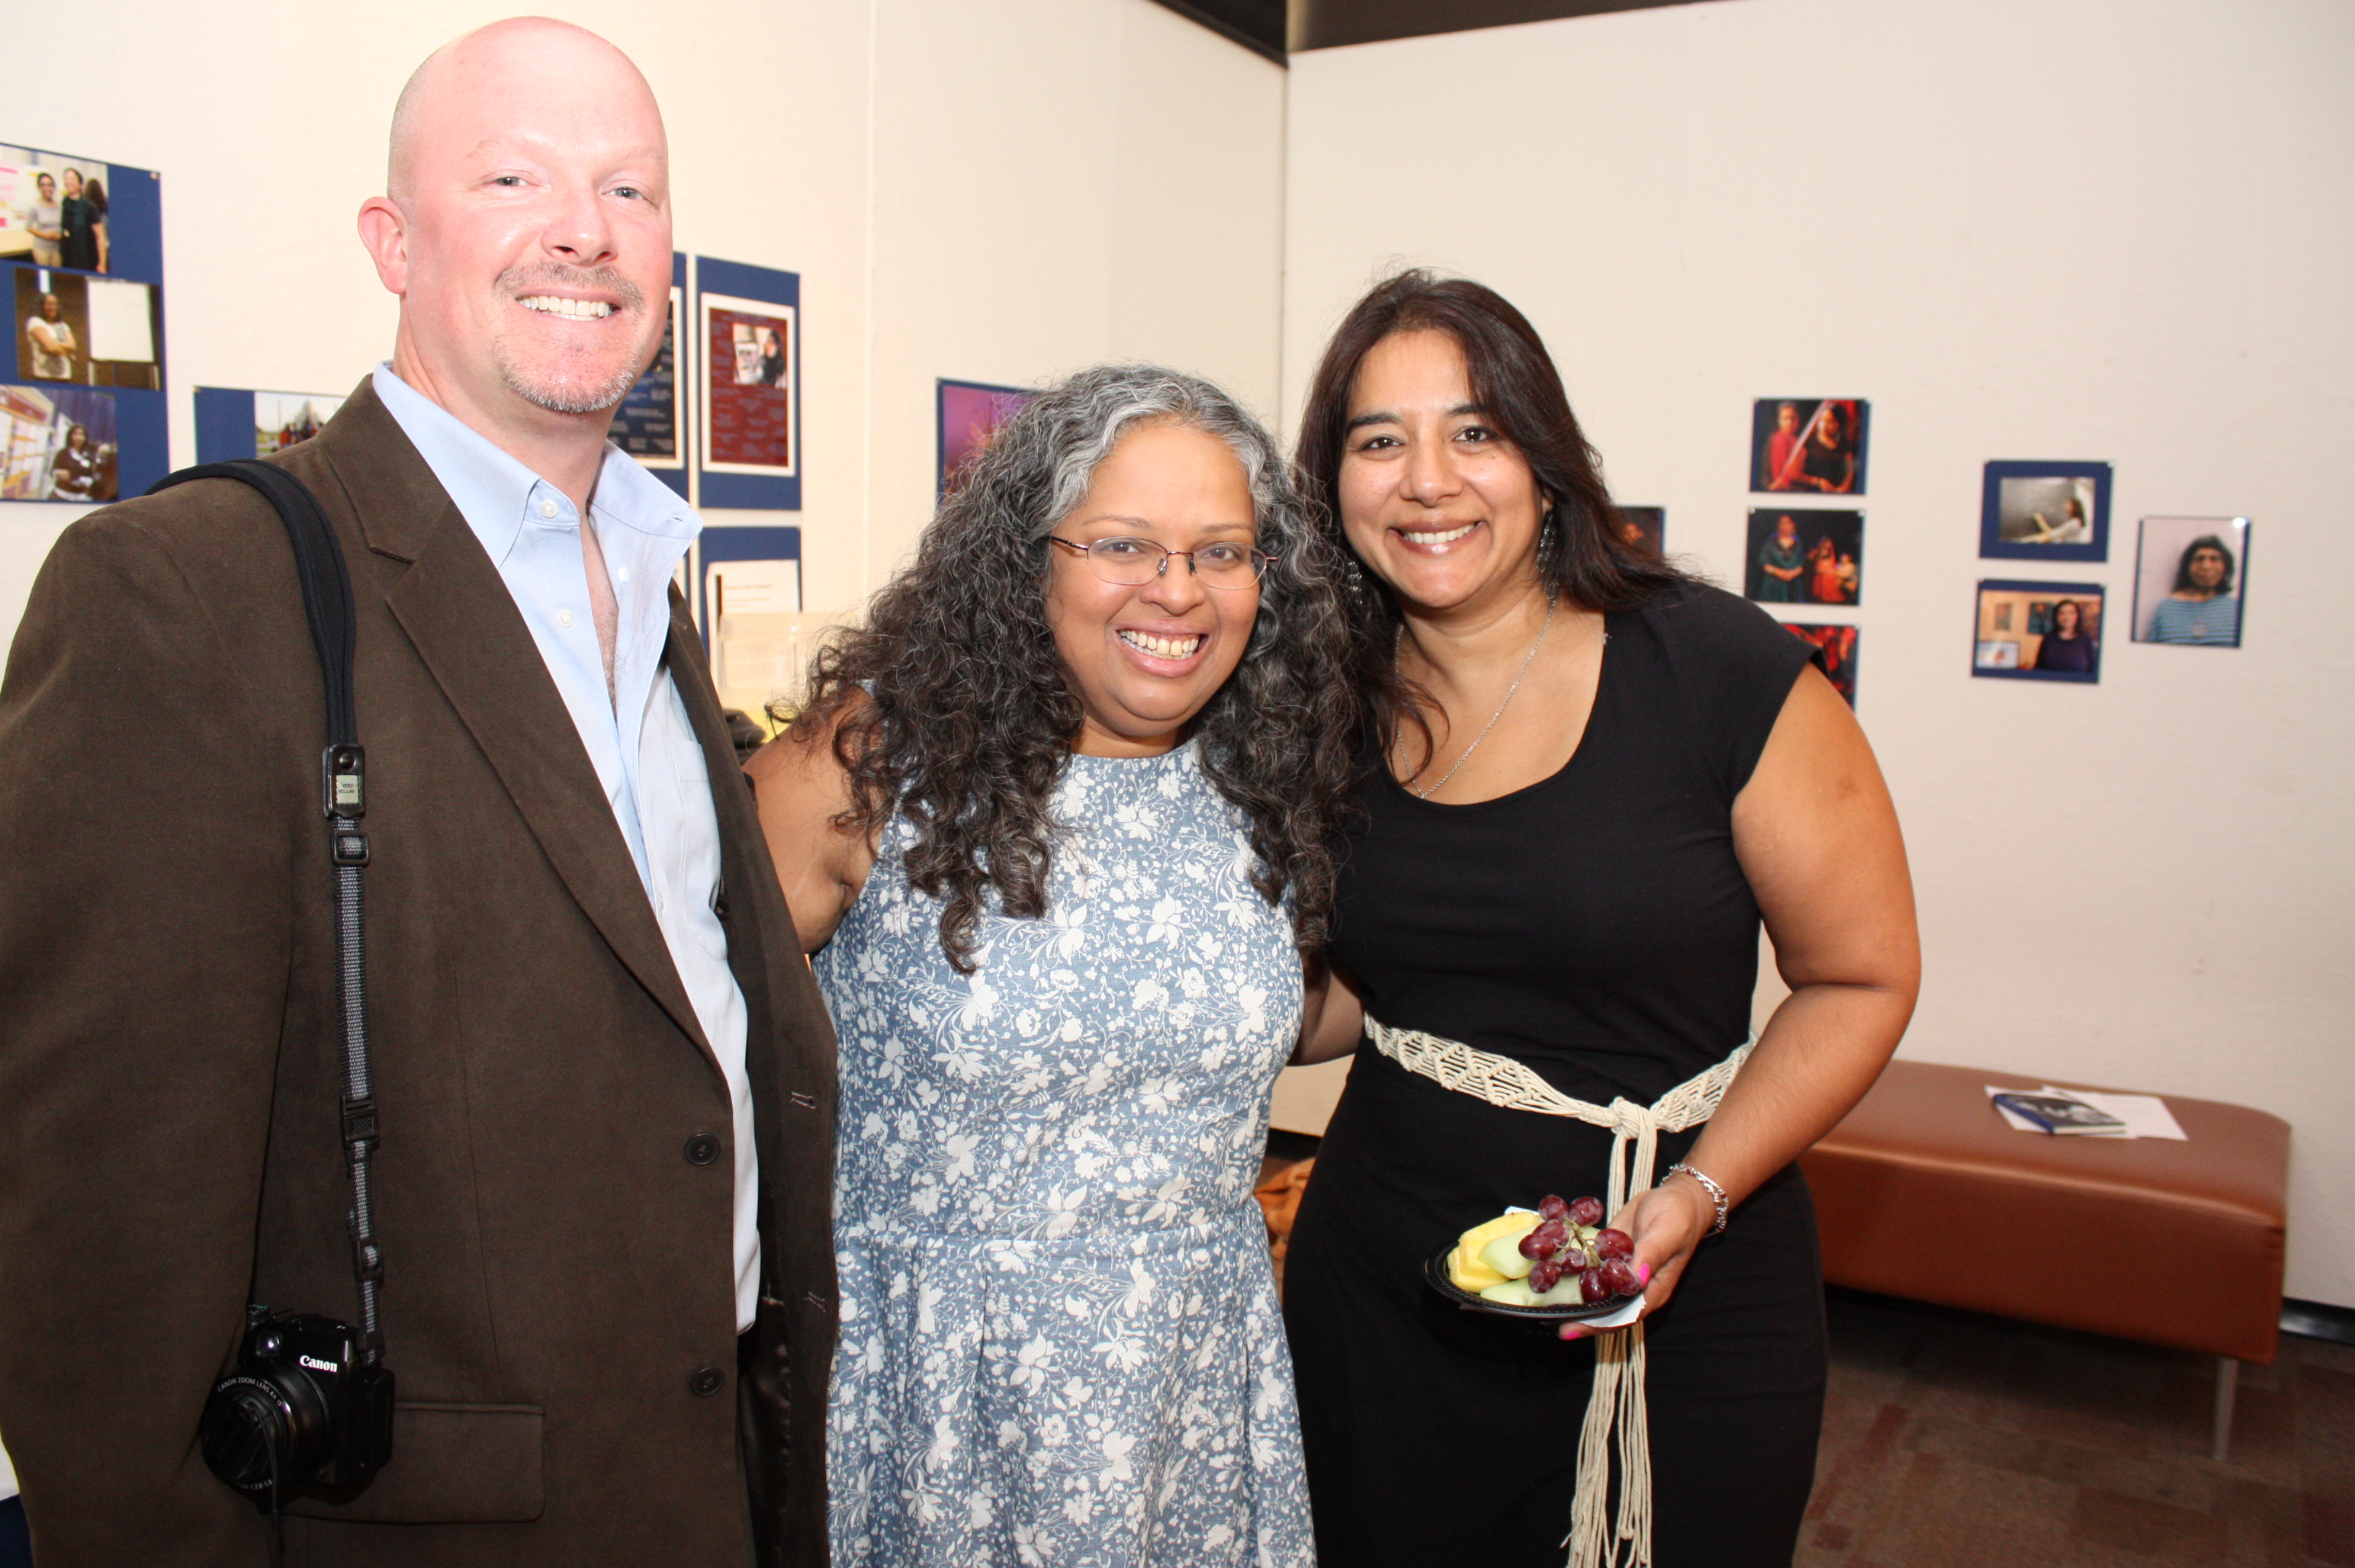 (left to right) Preston Merchant, Mary Anne Mohanraj, festival director, Rajdeep Paulus at the opening night reception